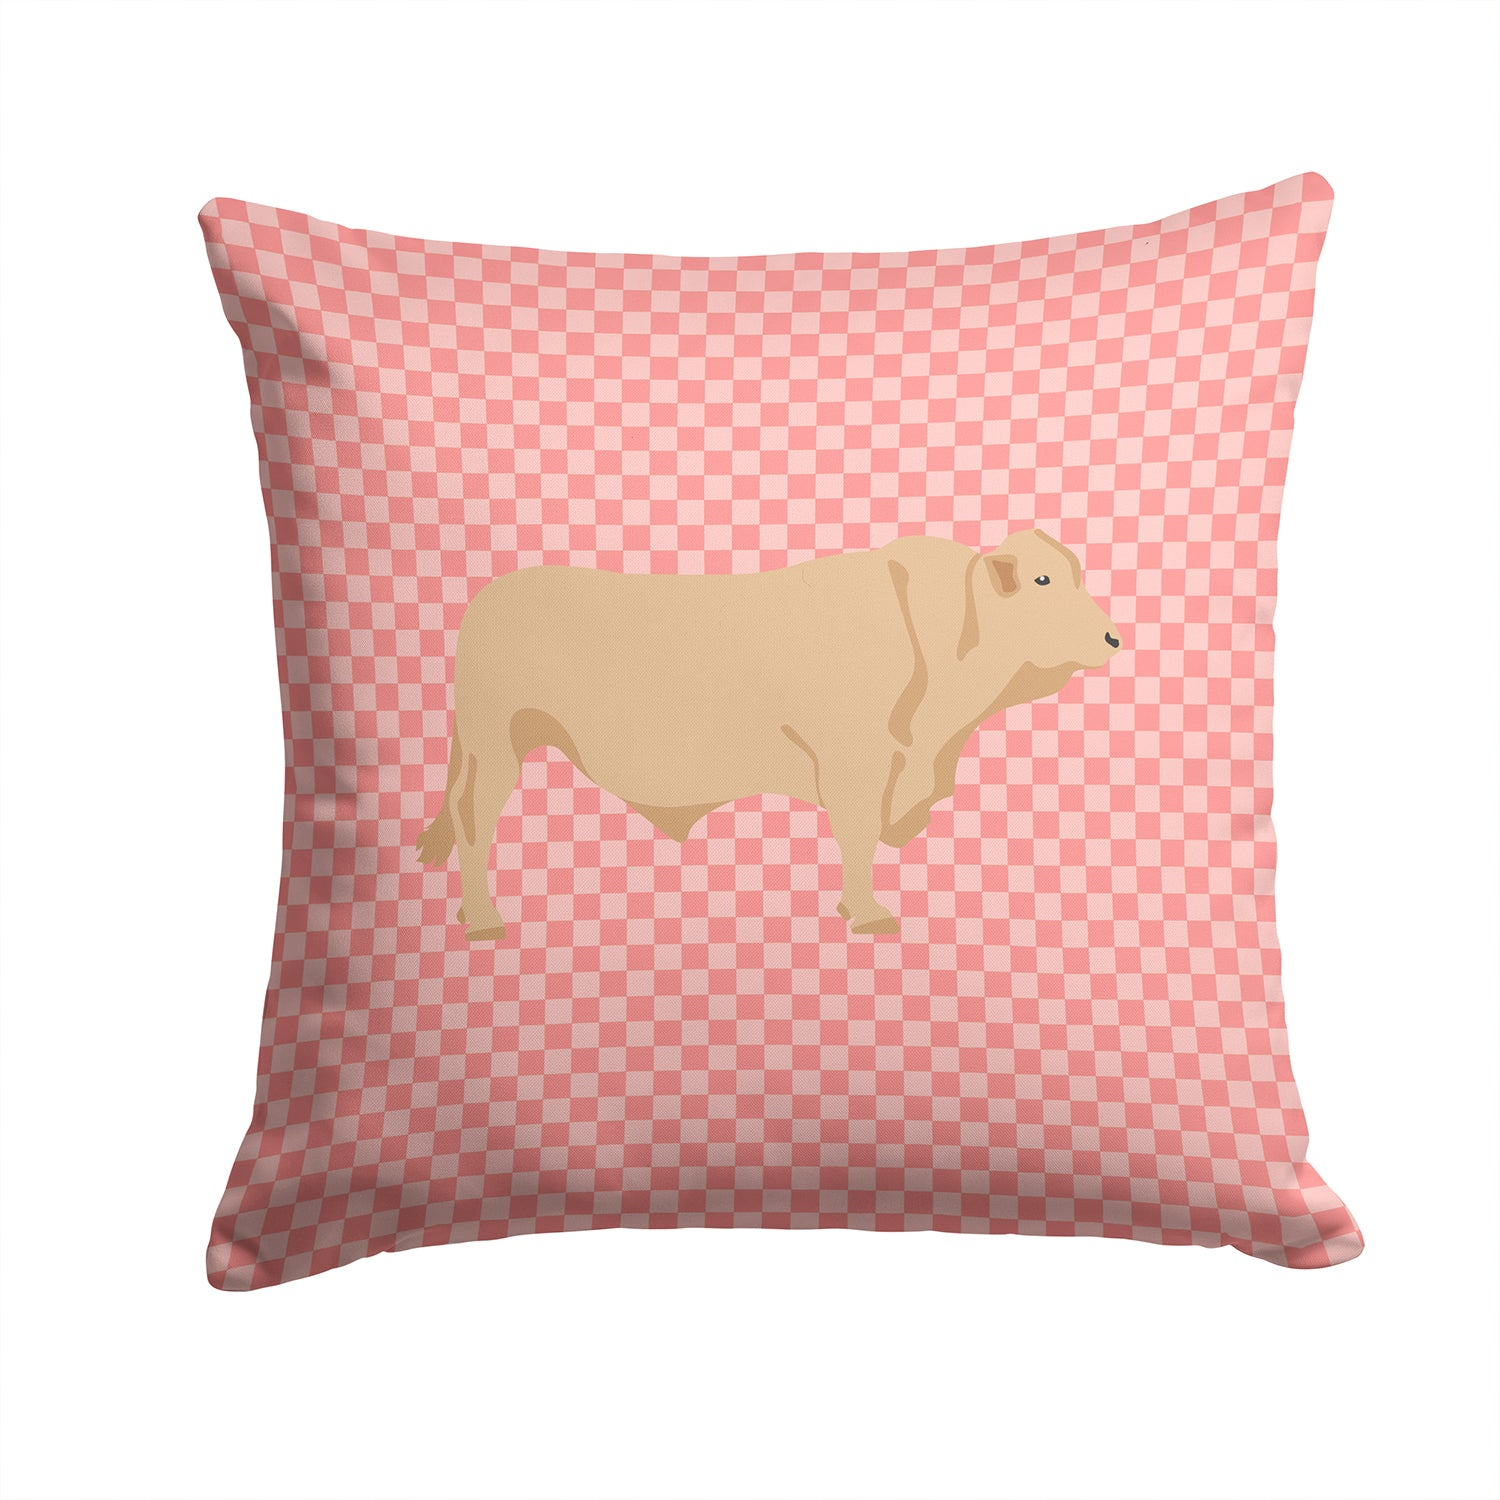 Charolais Cow Pink Check Fabric Decorative Pillow BB7826PW1414 by Caroline's Treasures